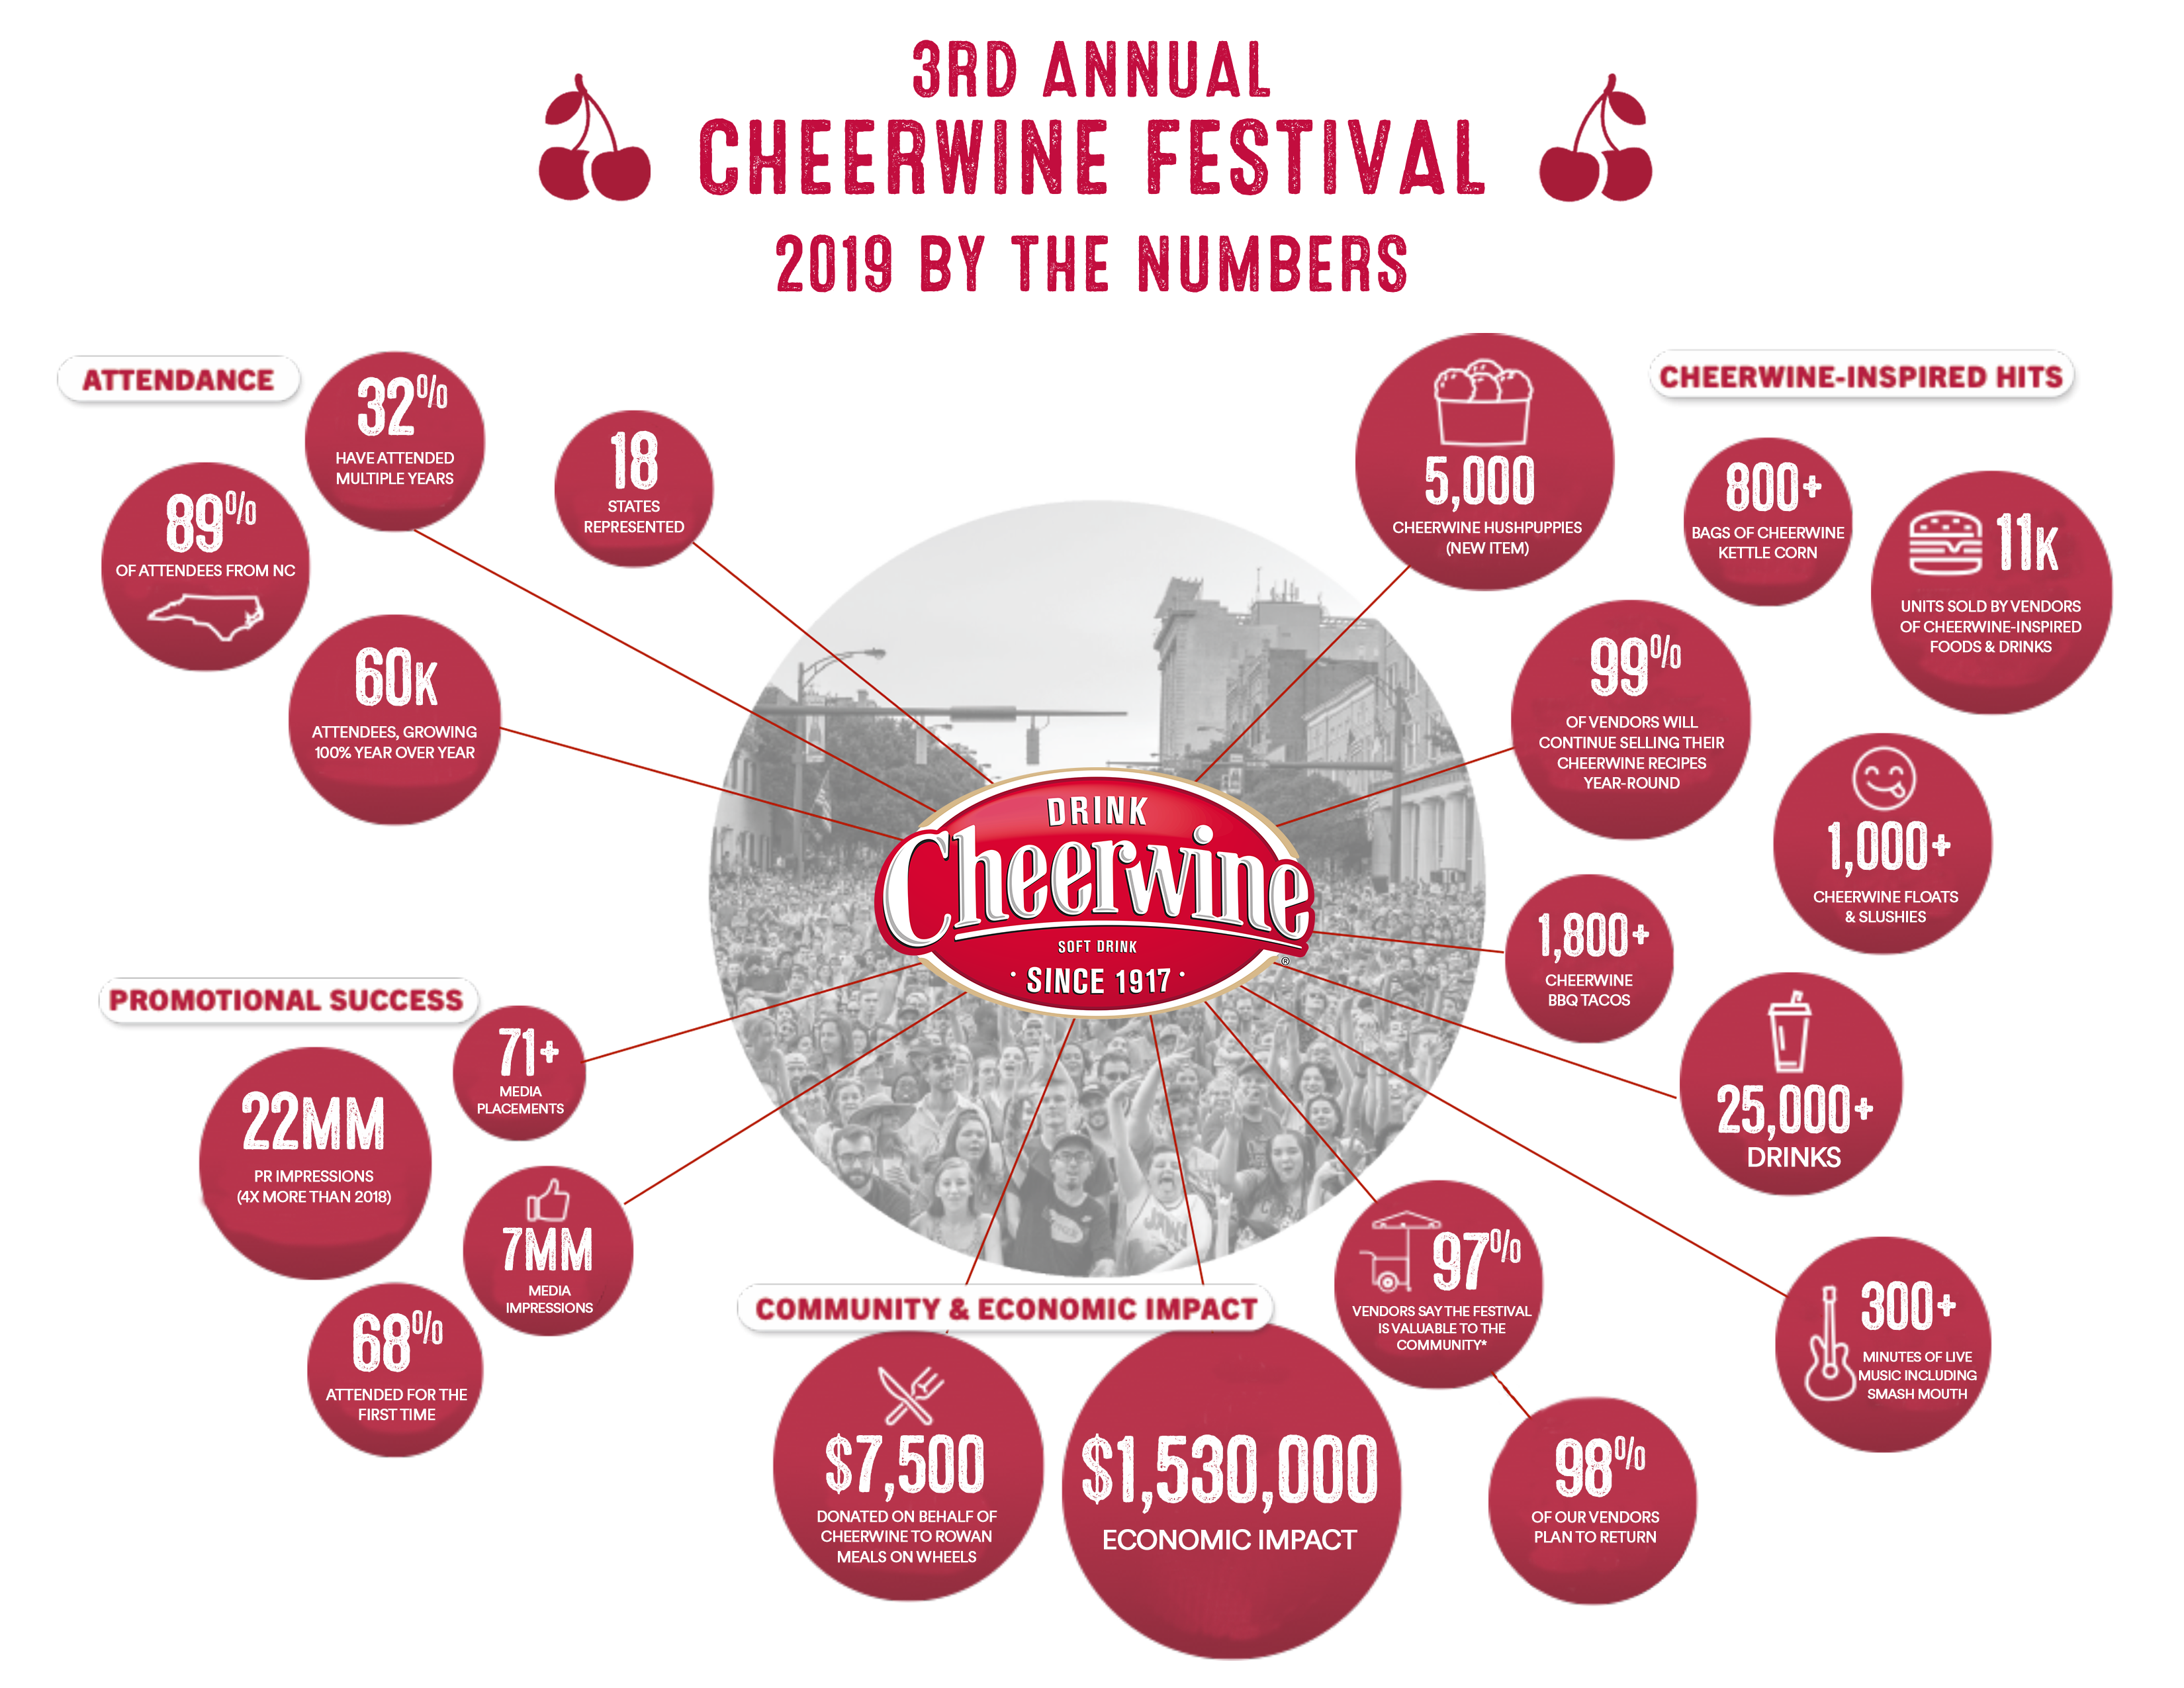 3rd Annual Cheerwine Festival: 2019 by the numbers